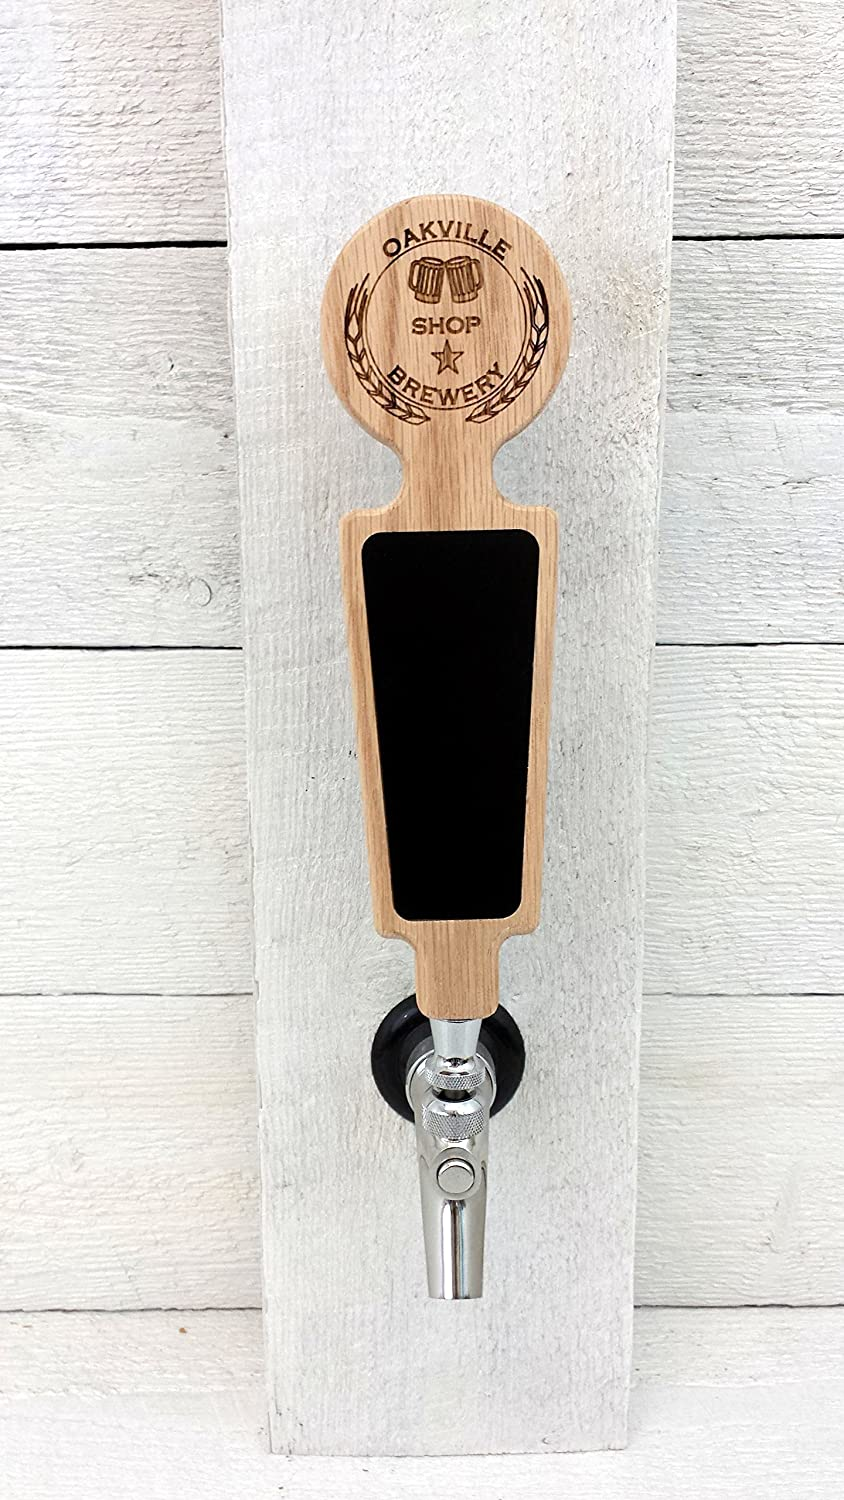 Custom personalized beer tap handle with Premium chalkboard dry-erase surface. Engraved with personalized logo. Great for restaurant, brewery and home kegerators.